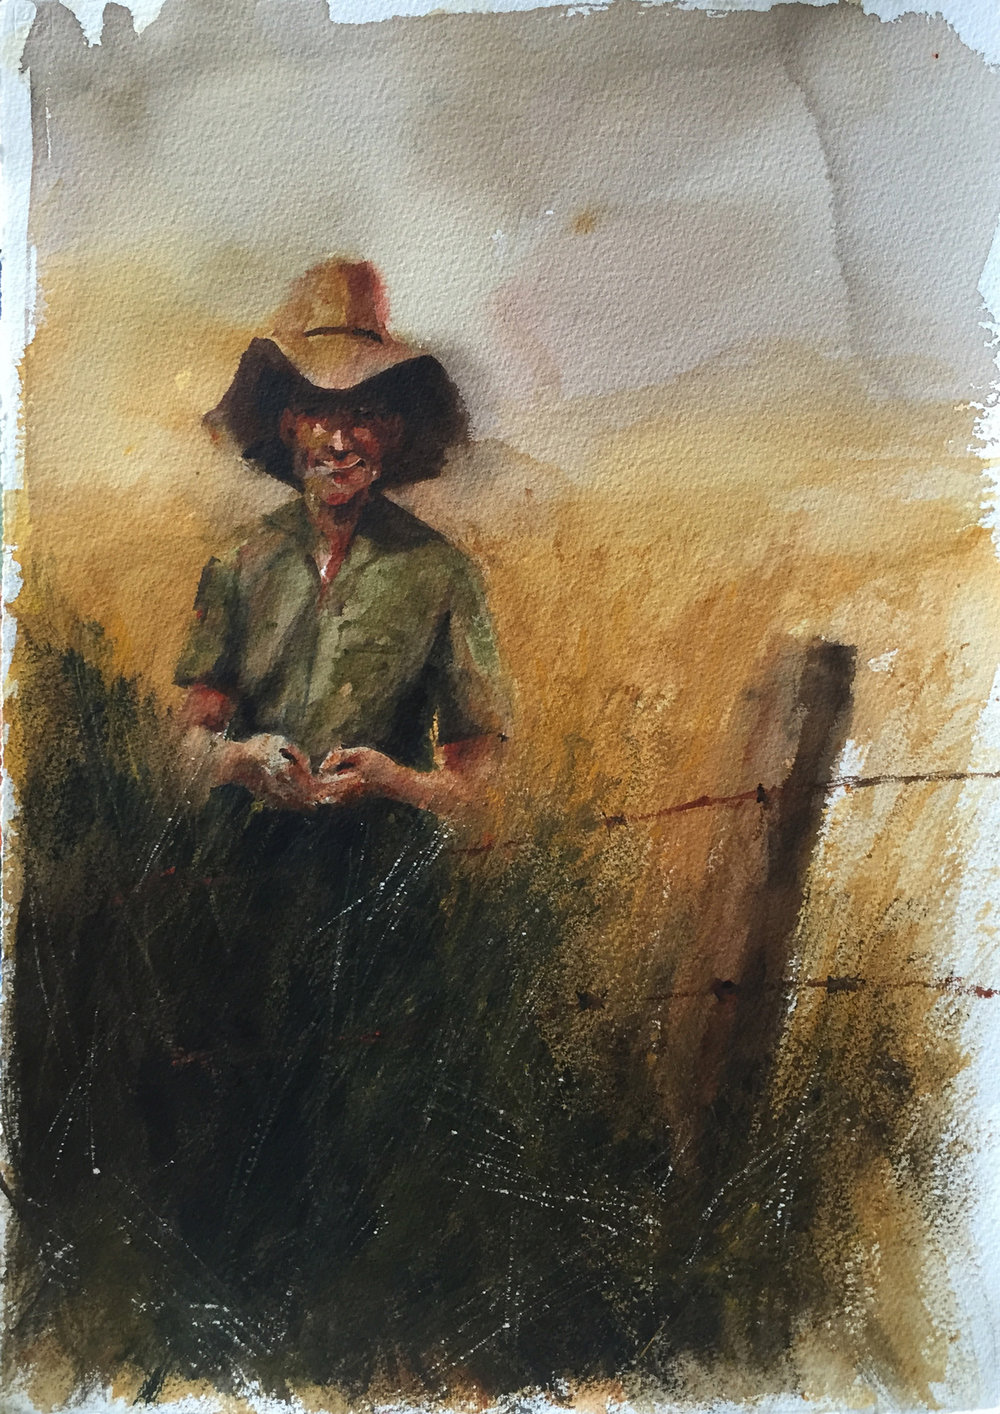 Farmer-Crop-Water-Colour-Painting-by-Frano.jpg